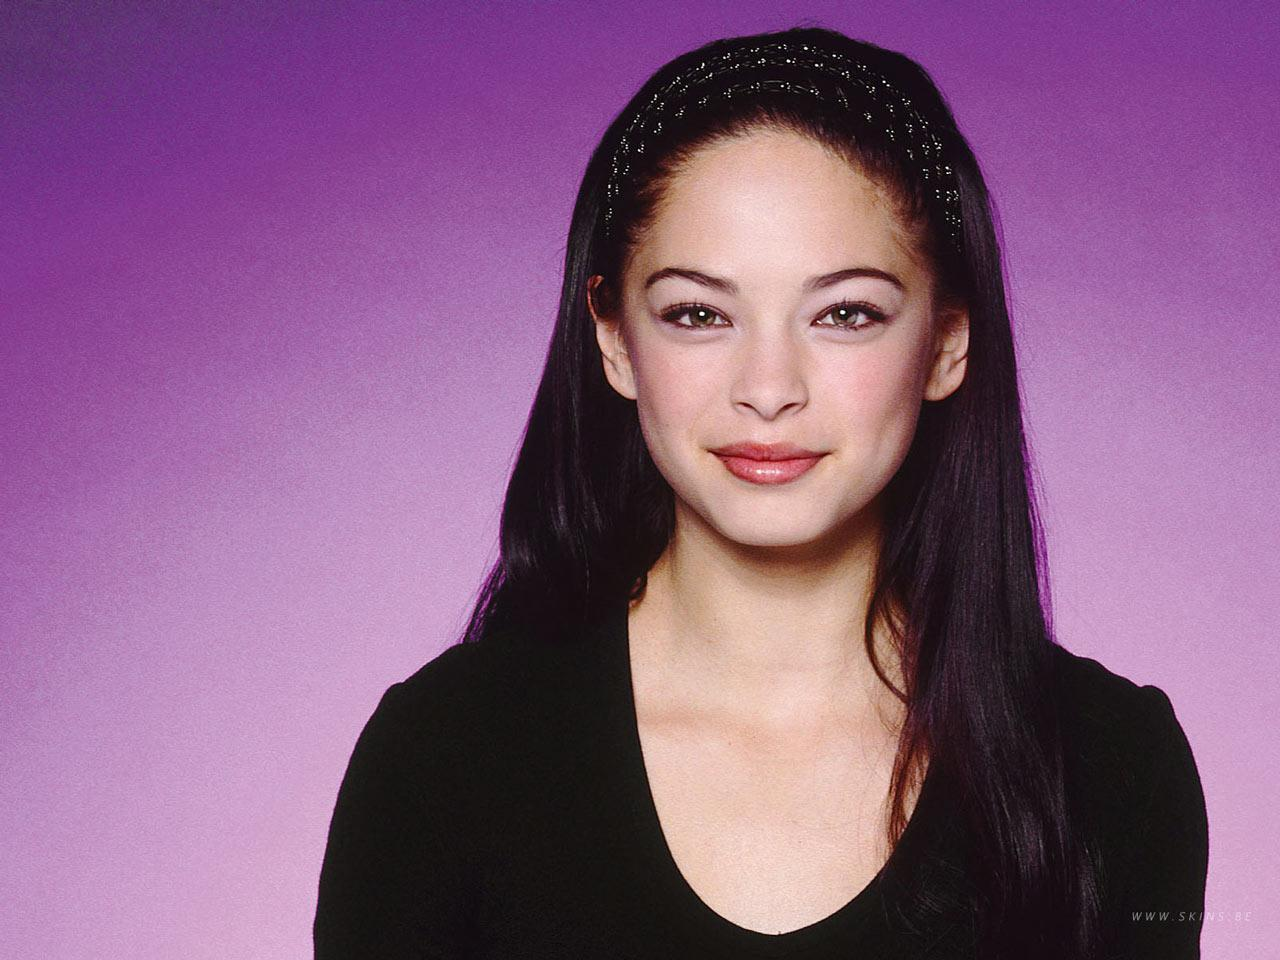 Wallpaper Kristin Kreuk Lana simplement